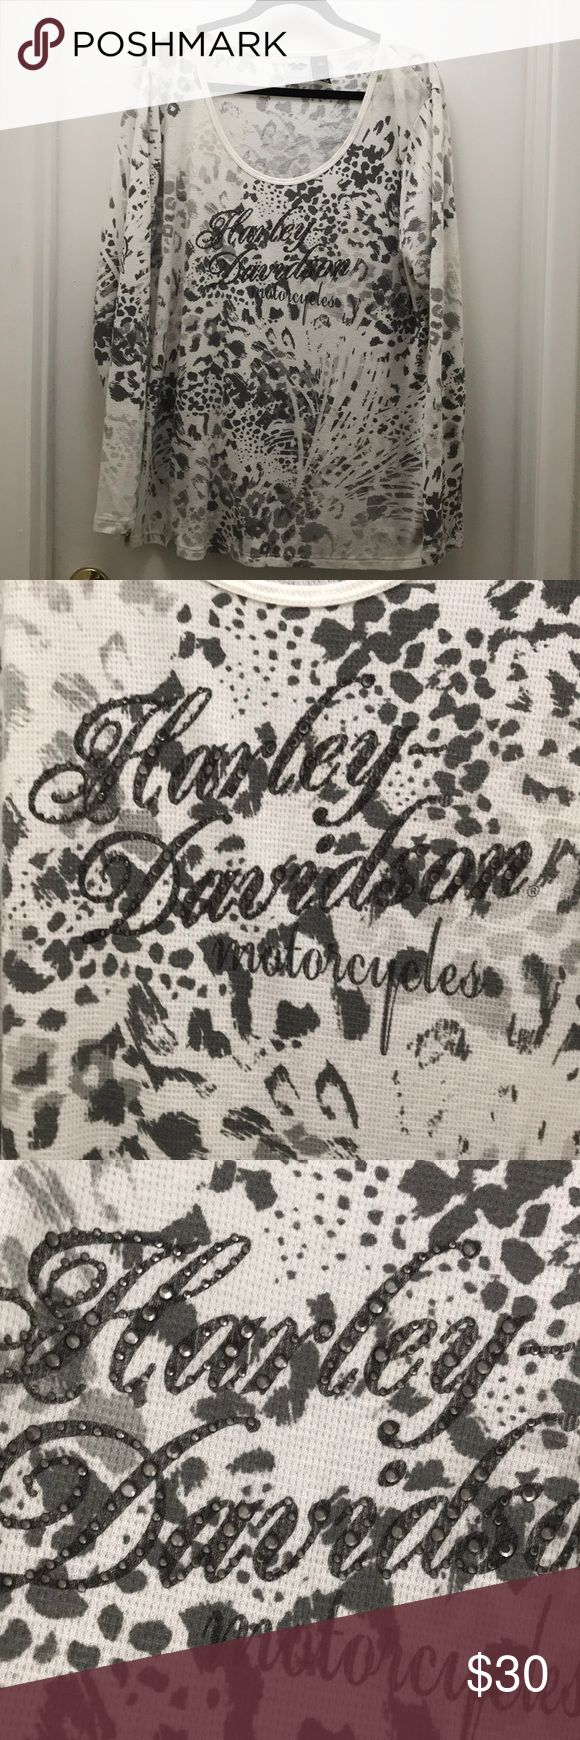 Official Harley-Davidson women's long sleeve top Because nothing says Harley like animal print and bling!! Long sleeve waffle knit top. Blinged out HD front and back! Size 2W Harley-Davidson Tops Tees - Long Sleeve